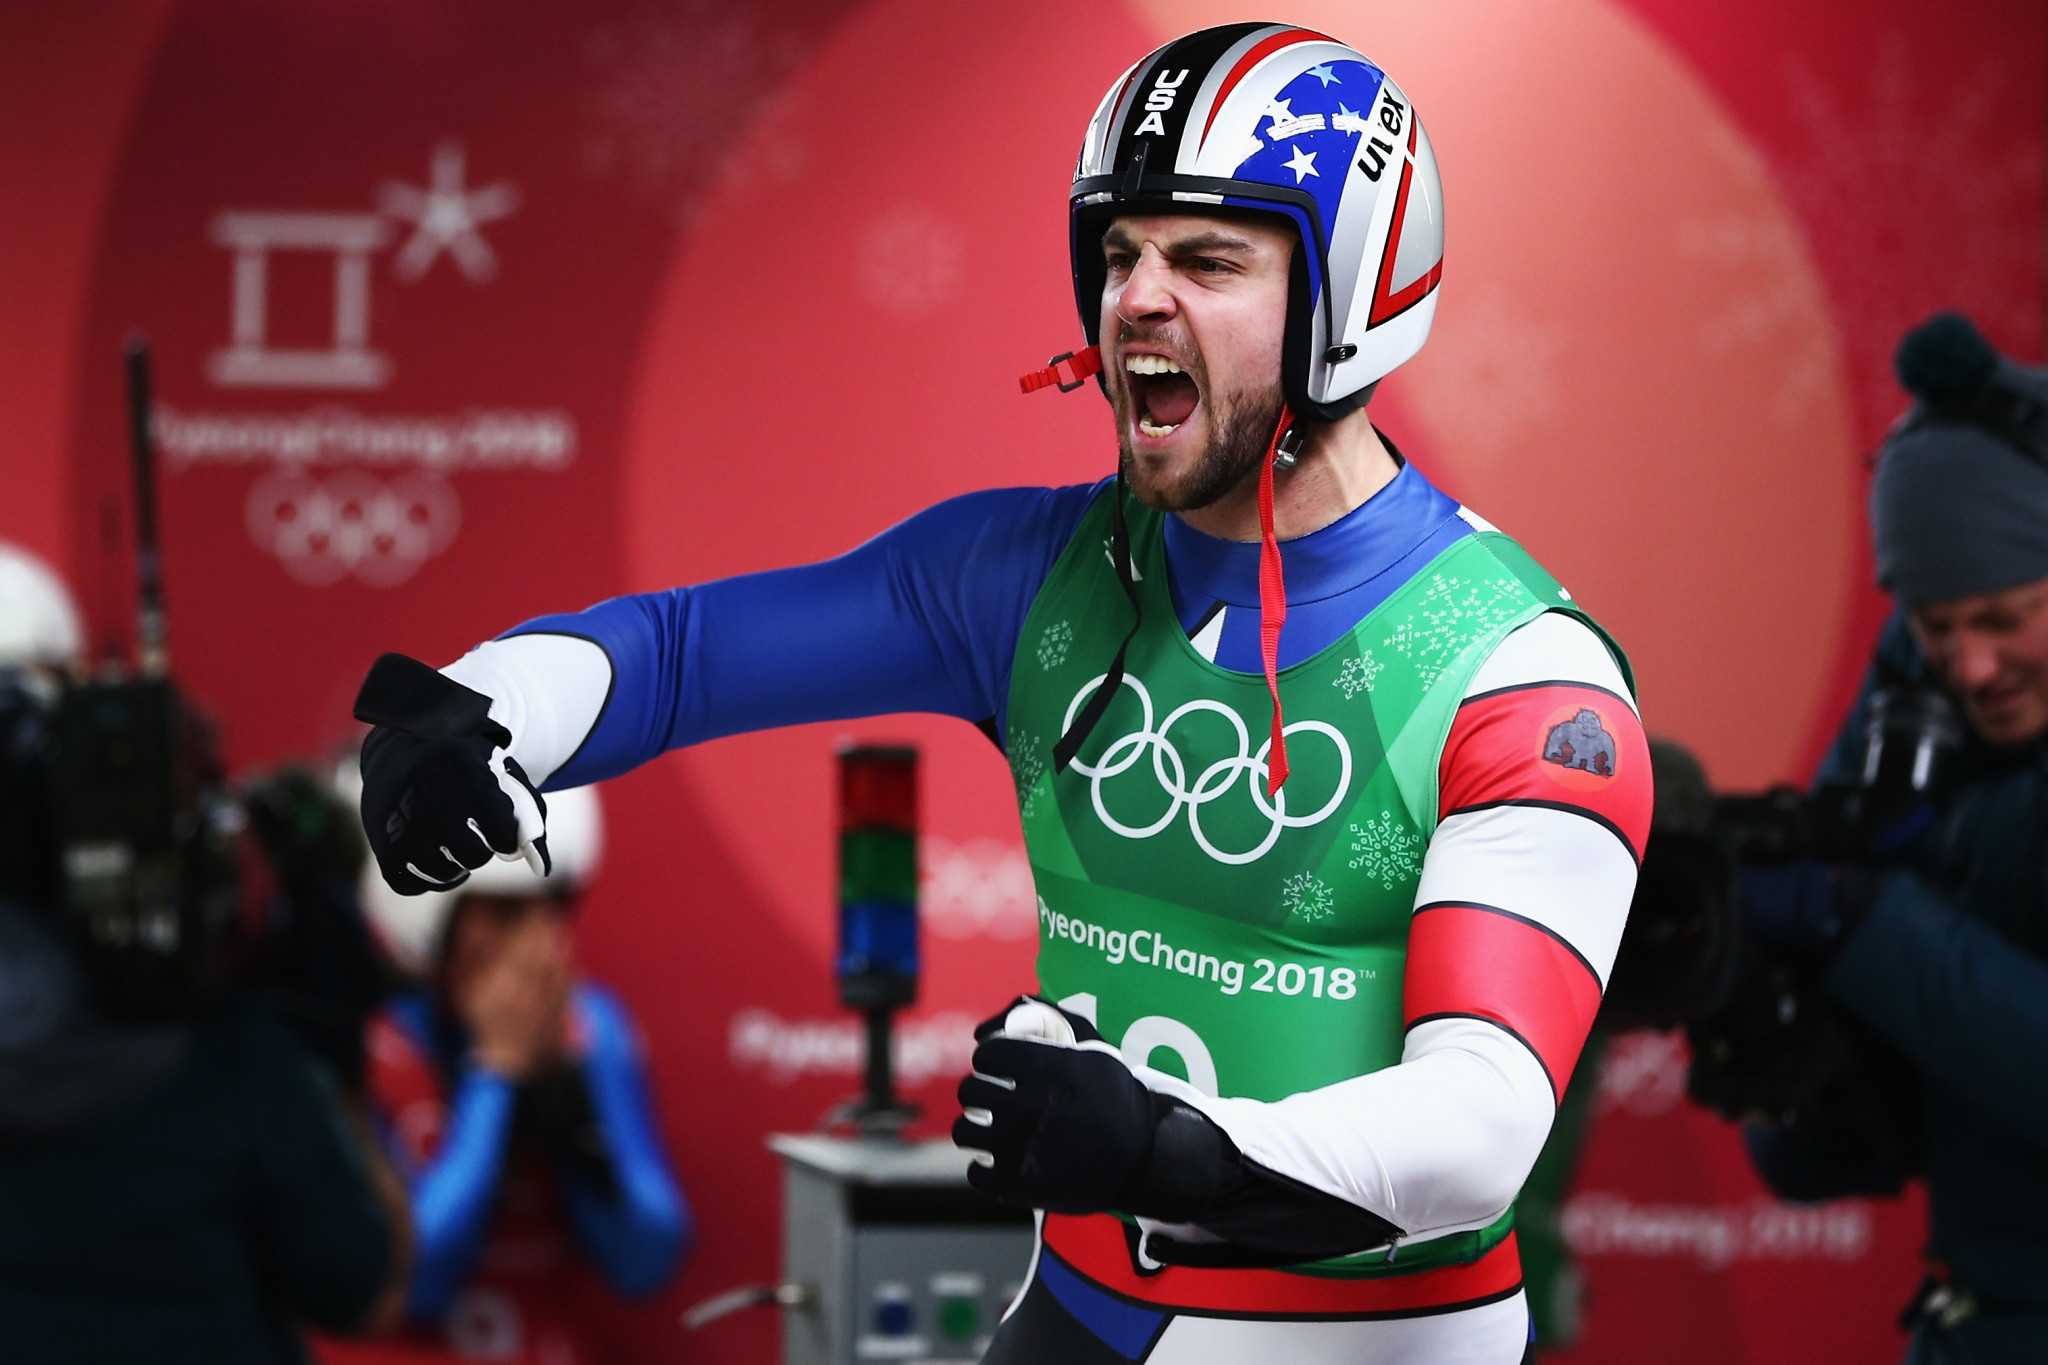 America's Olympic silver medallist Chris Mazdzer will be competing in both the men's singles and doubles event in the upcoming 2018-2019 FIL Luge World Cup season ©Getty Images